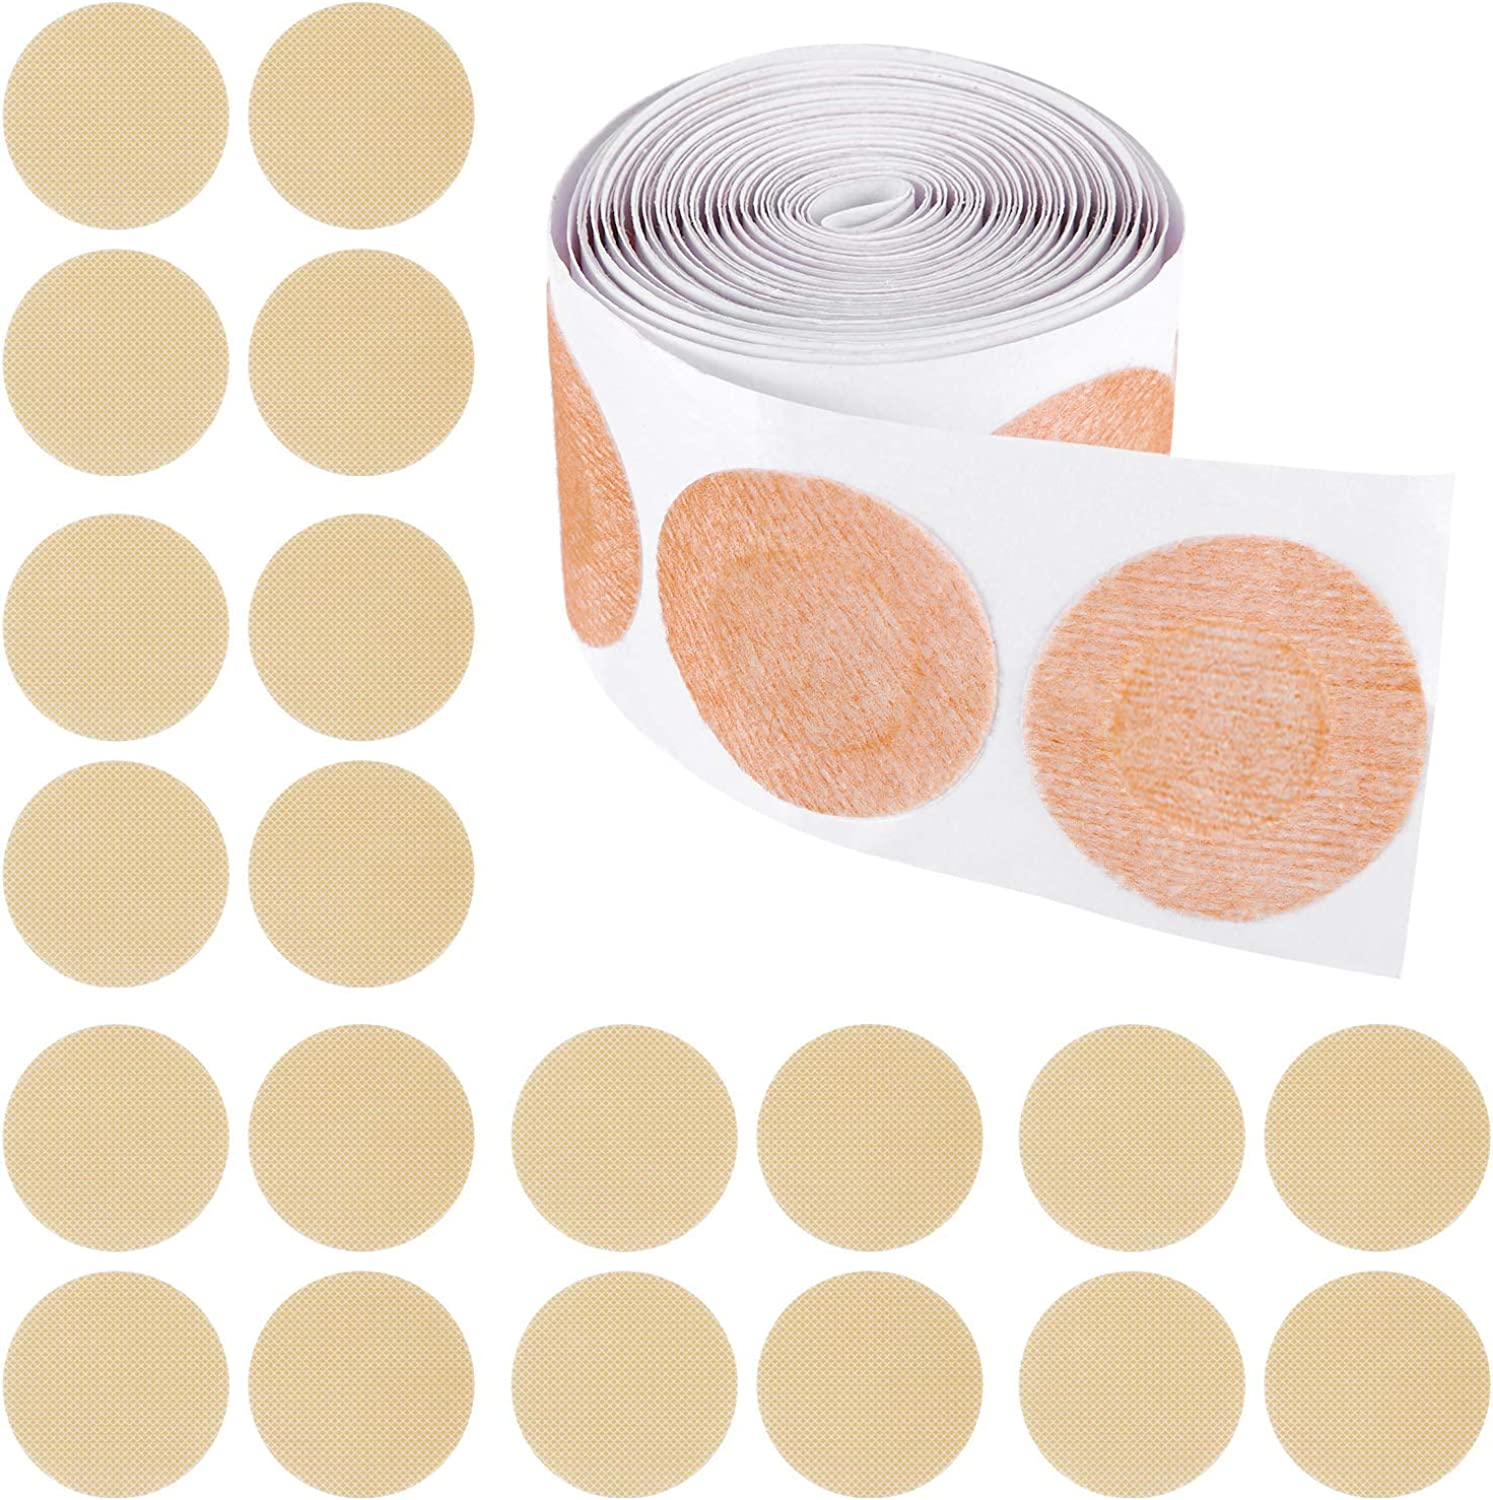 120 Pieces Nipple Tape for Men Kit, Nipple Guard Men Nipplecovers Nipple Tape for Men Pasties Disposable Pasty Set Nipple Chafing Solution